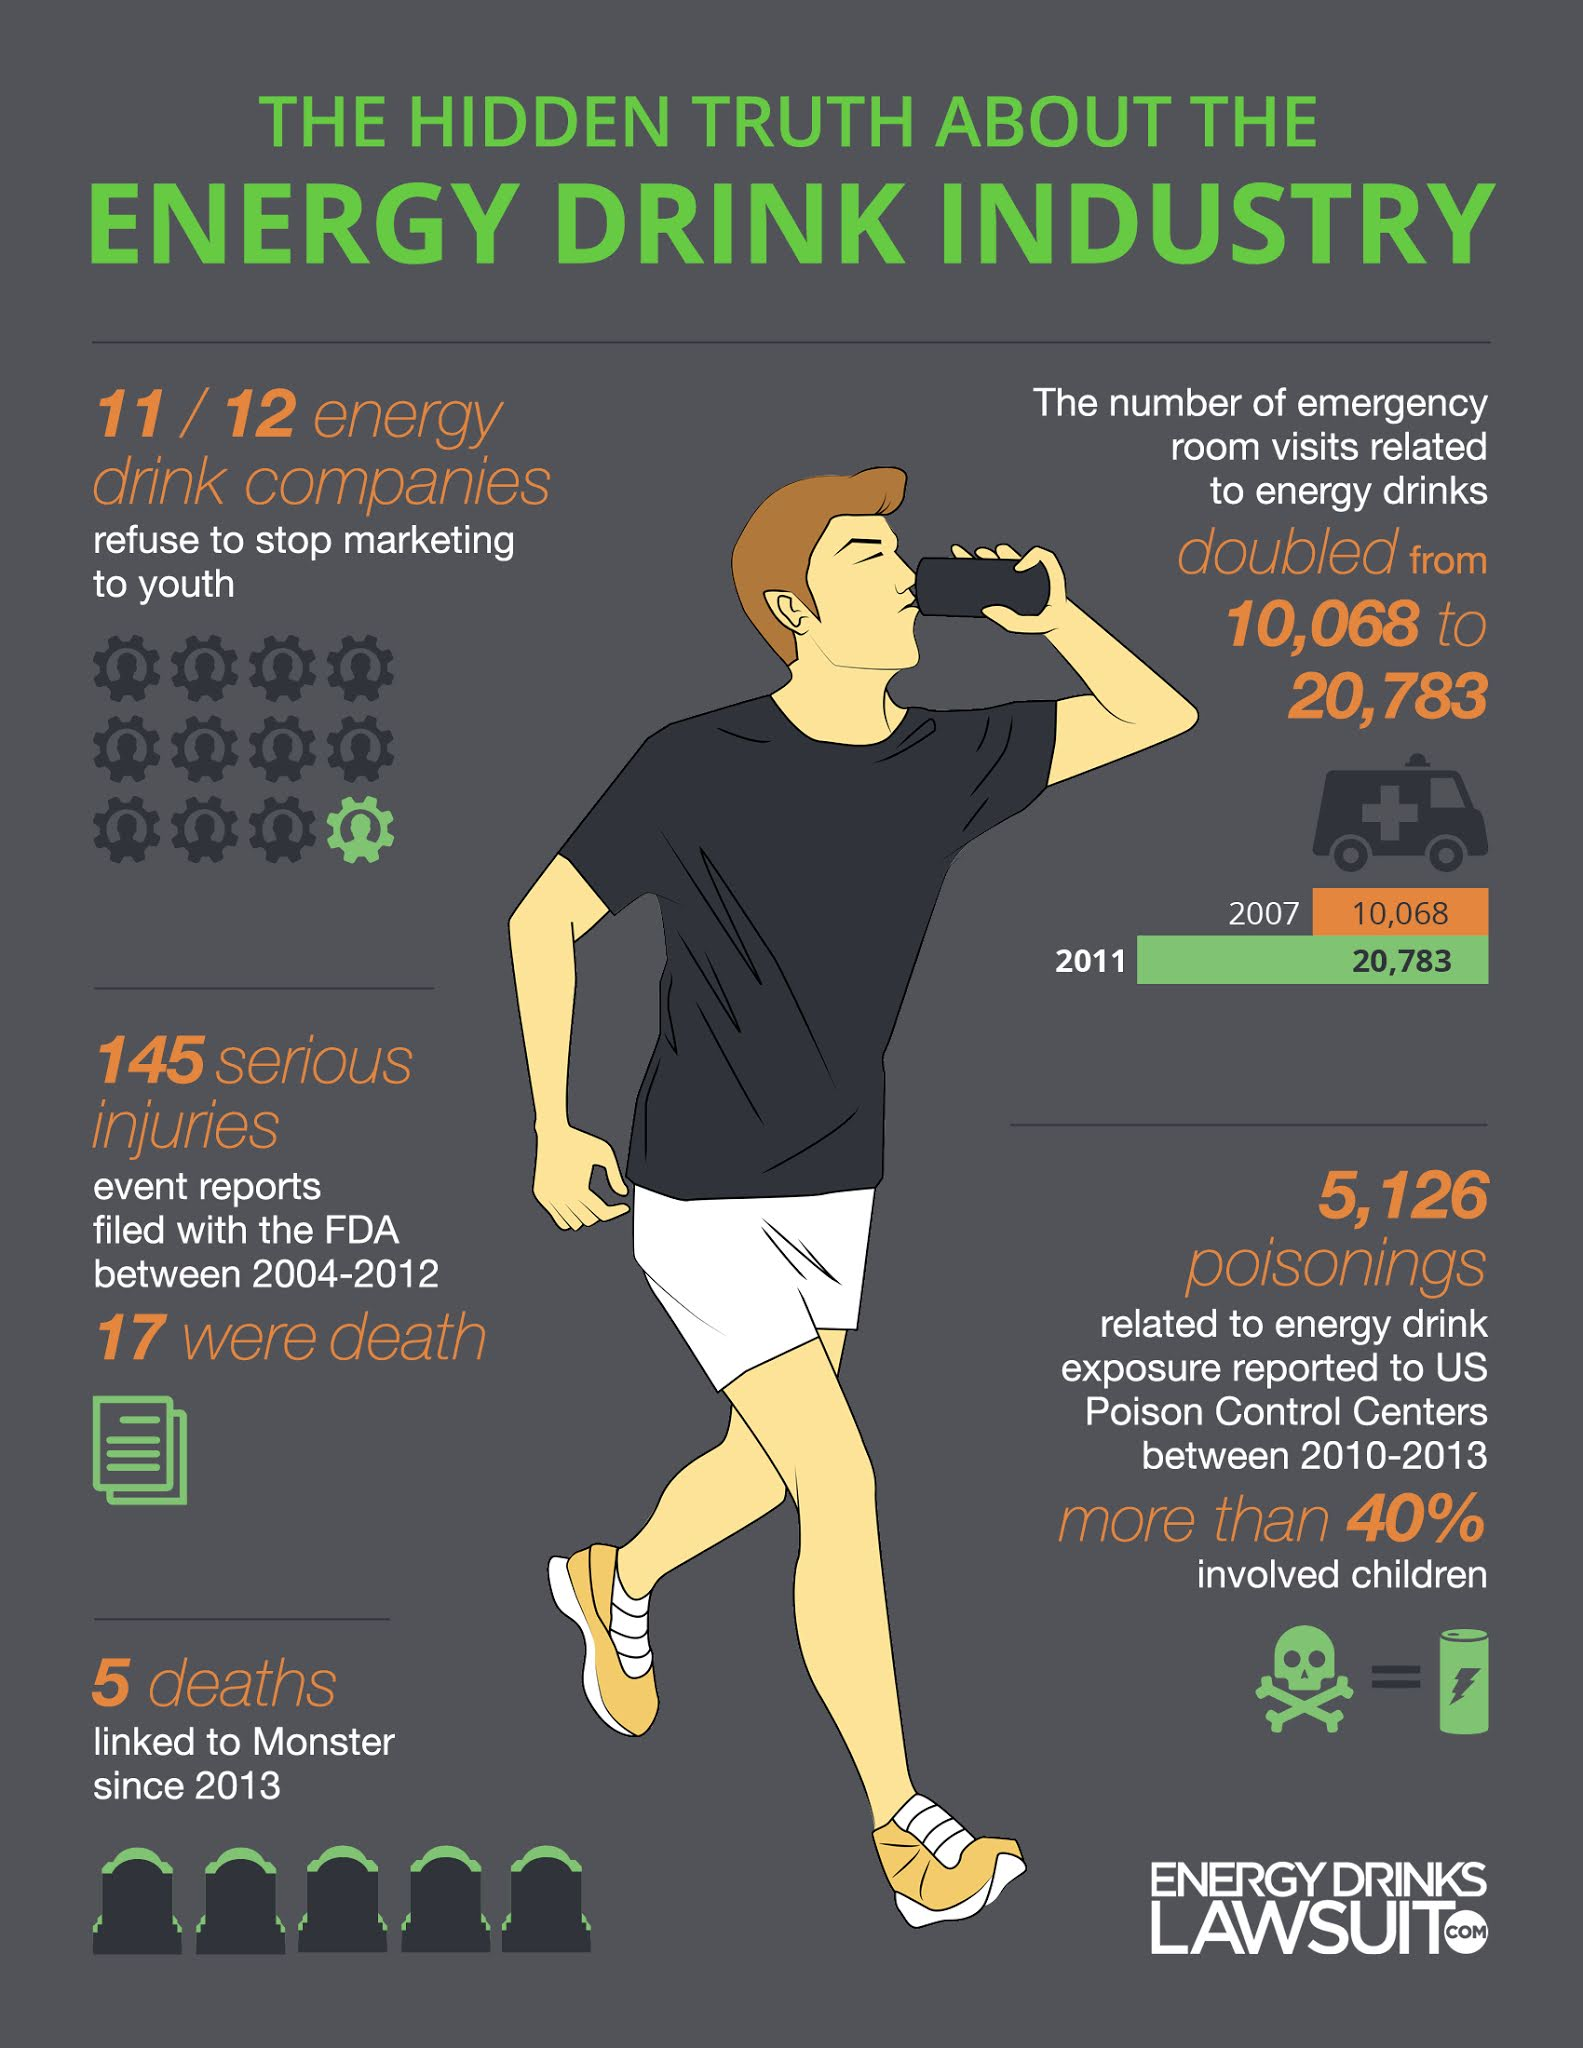 The Hidden Truth About Energy Drinks Industry #infographic #Energy Drinks #Drinks Industry #Food & Drink